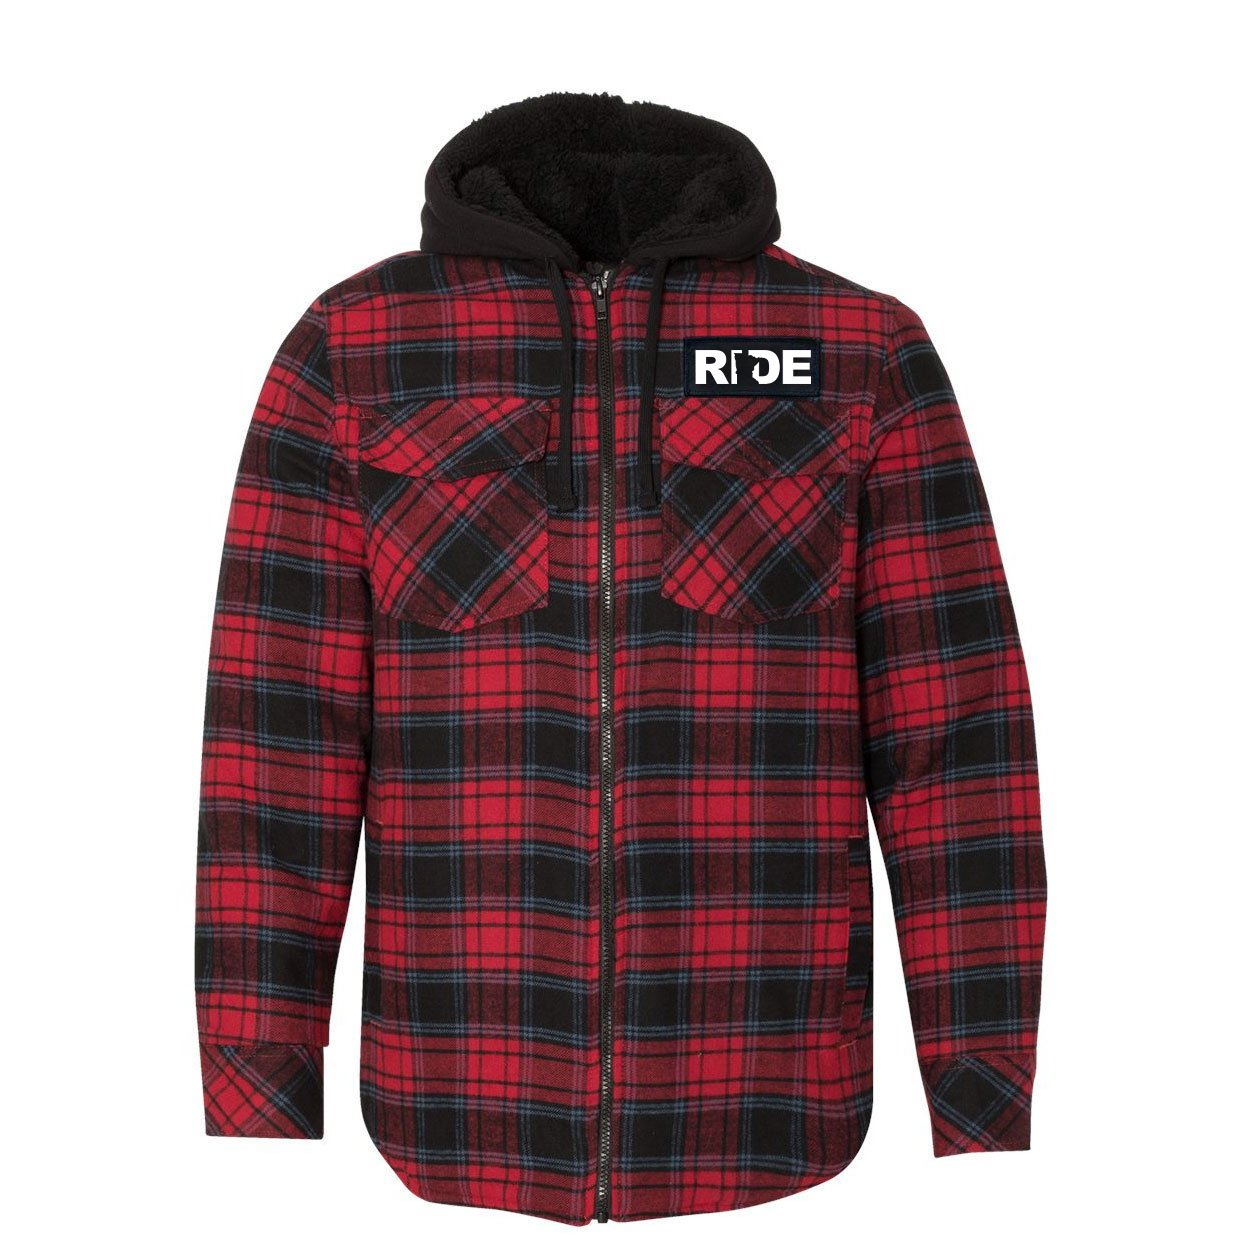 Ride Minnesota Classic Unisex Full Zip Woven Patch Hooded Flannel Jacket Red/Black Buffalo (White Logo)